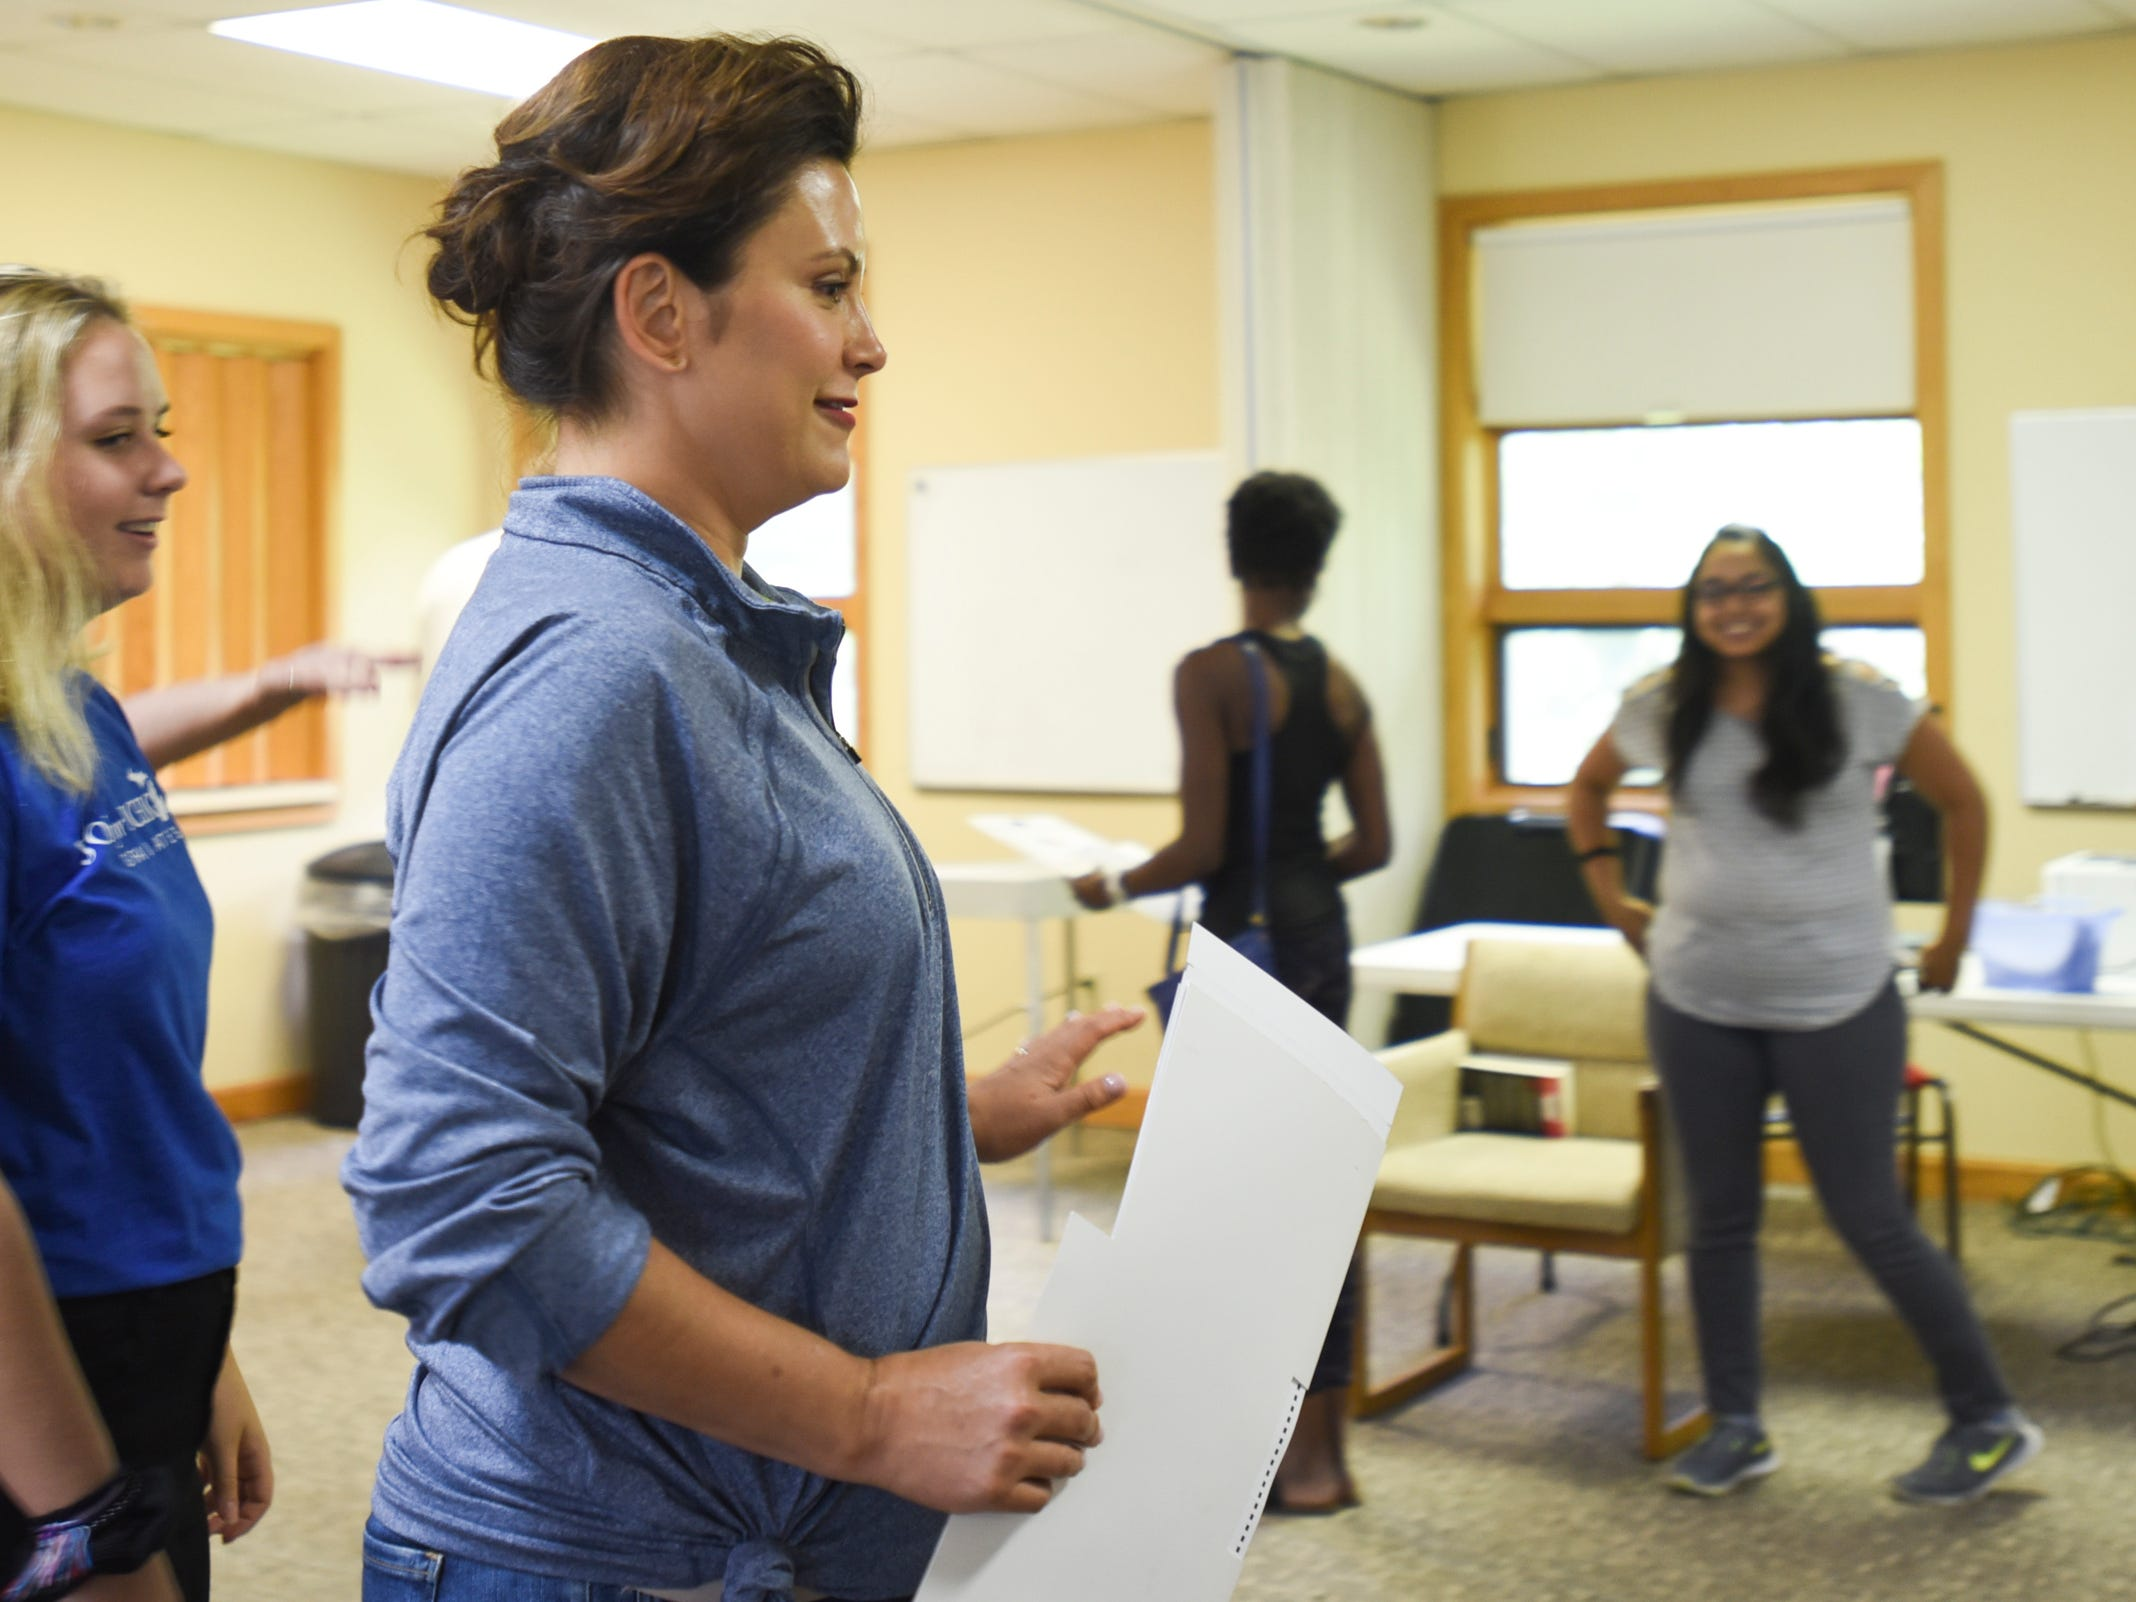 Michigan Democratic gubernatorial candidate Gretchen Whitmer gets ready to cast her ballot Tuesday at St. Paul Lutheran church in East Lansing, Mich.